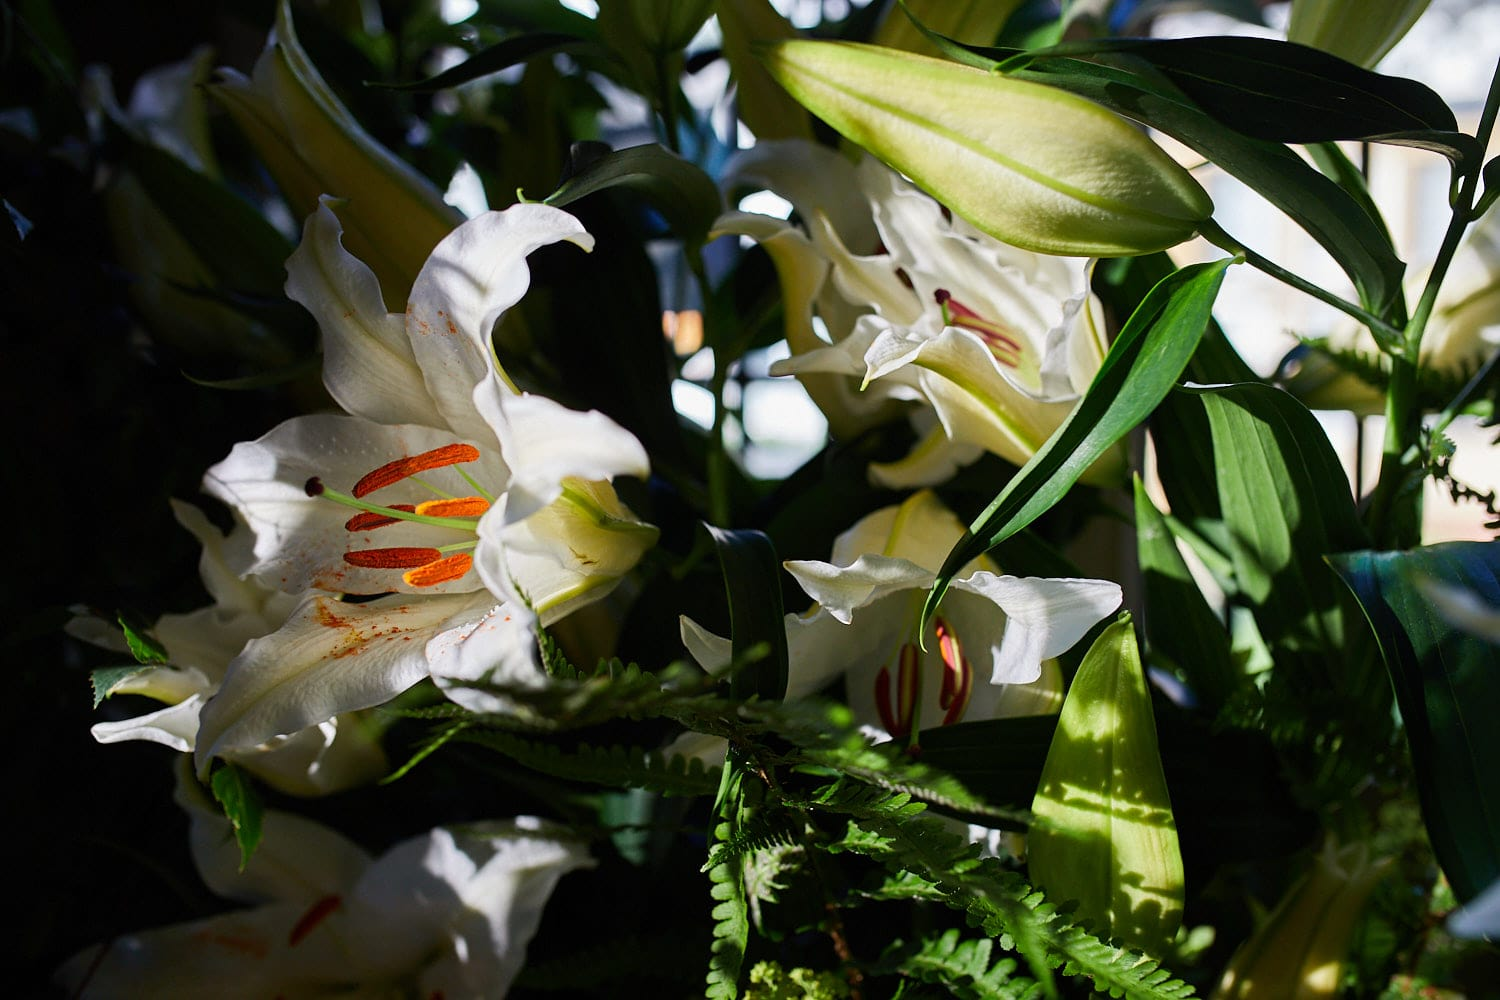 A close of up flowers from a wider display